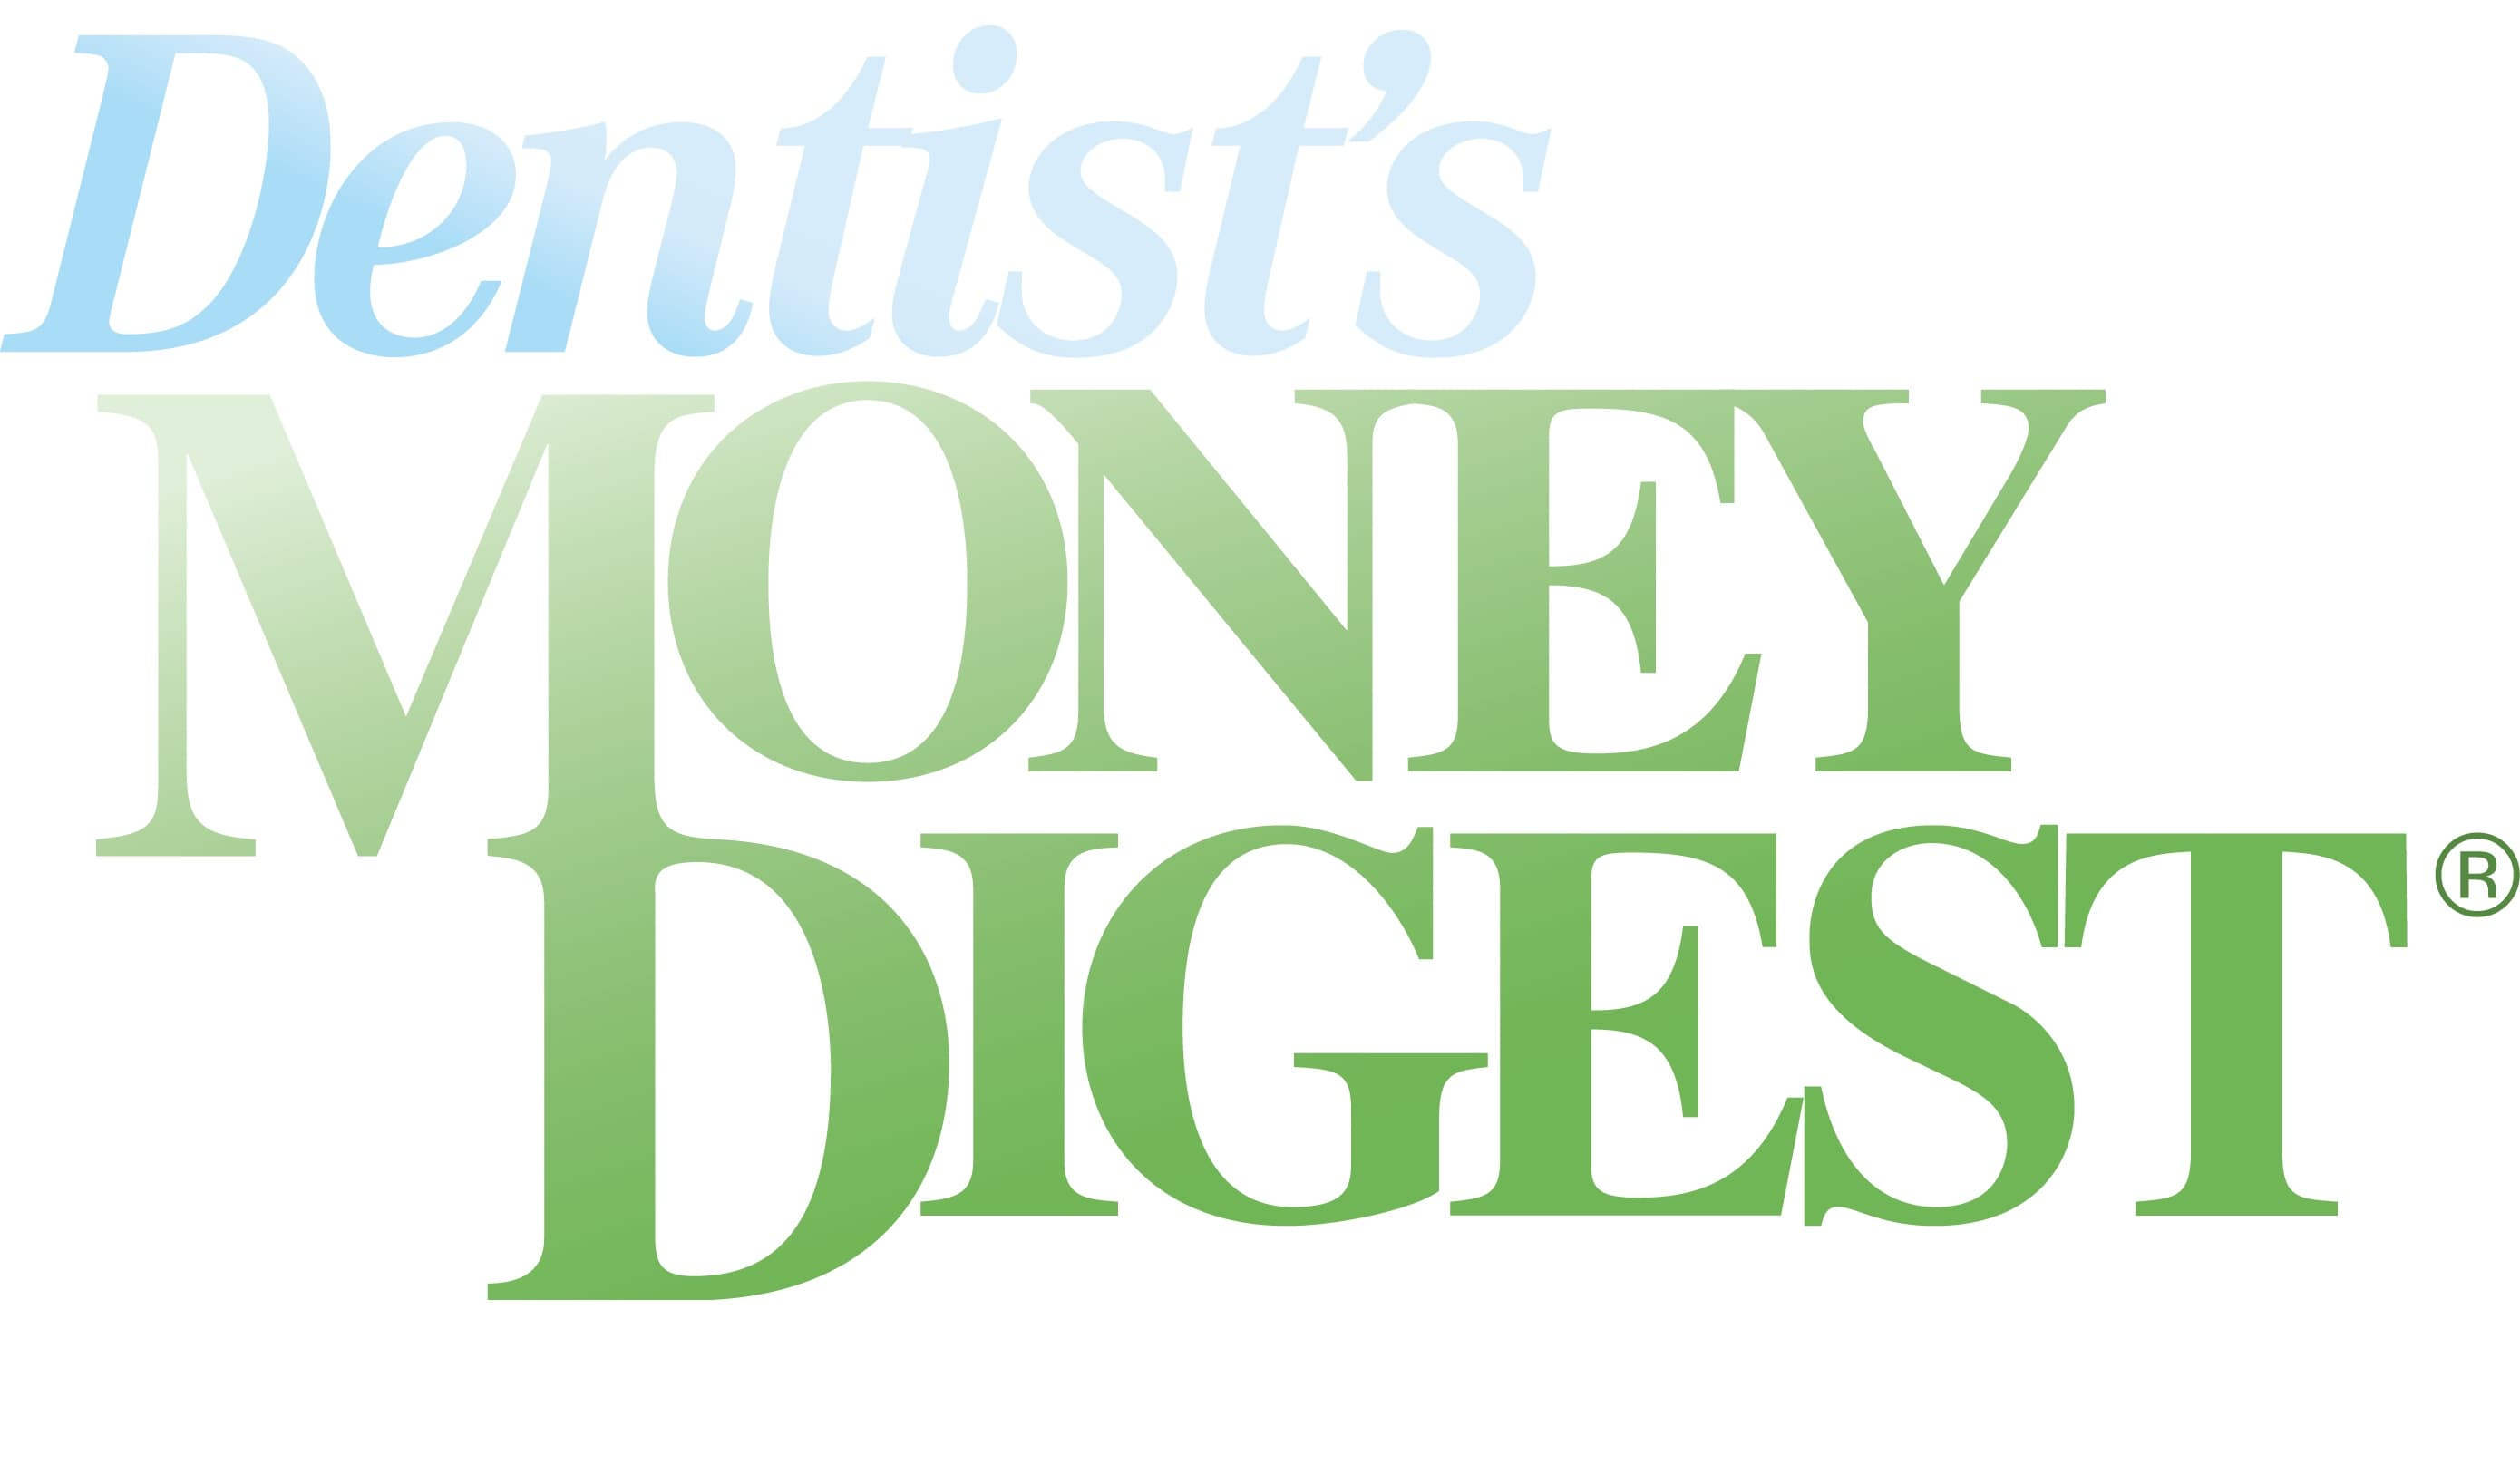 Money Digest logo